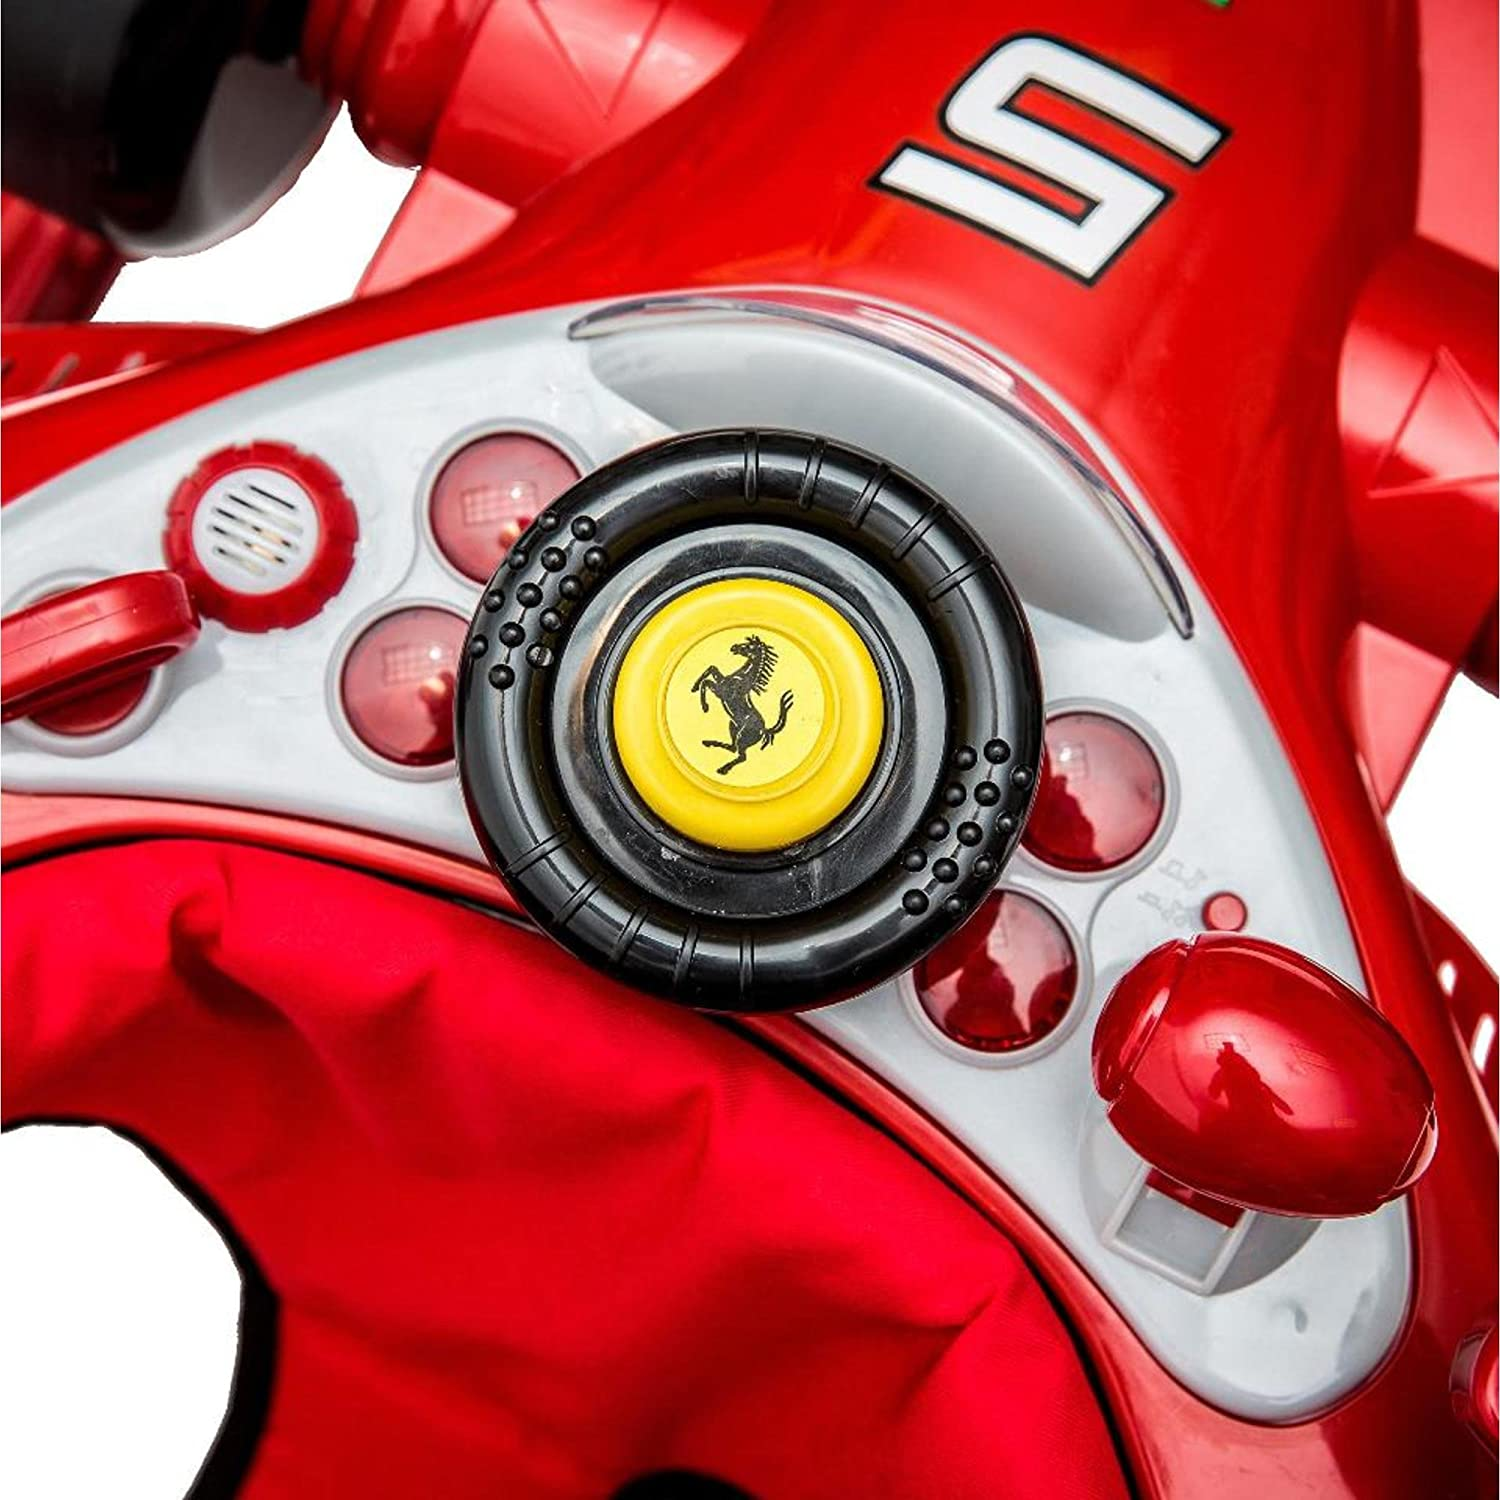 Combi Ferrari F1 Foldable Baby Walker With Racing Wheels Steering Wheel Activity Center And Built In Snack Tray